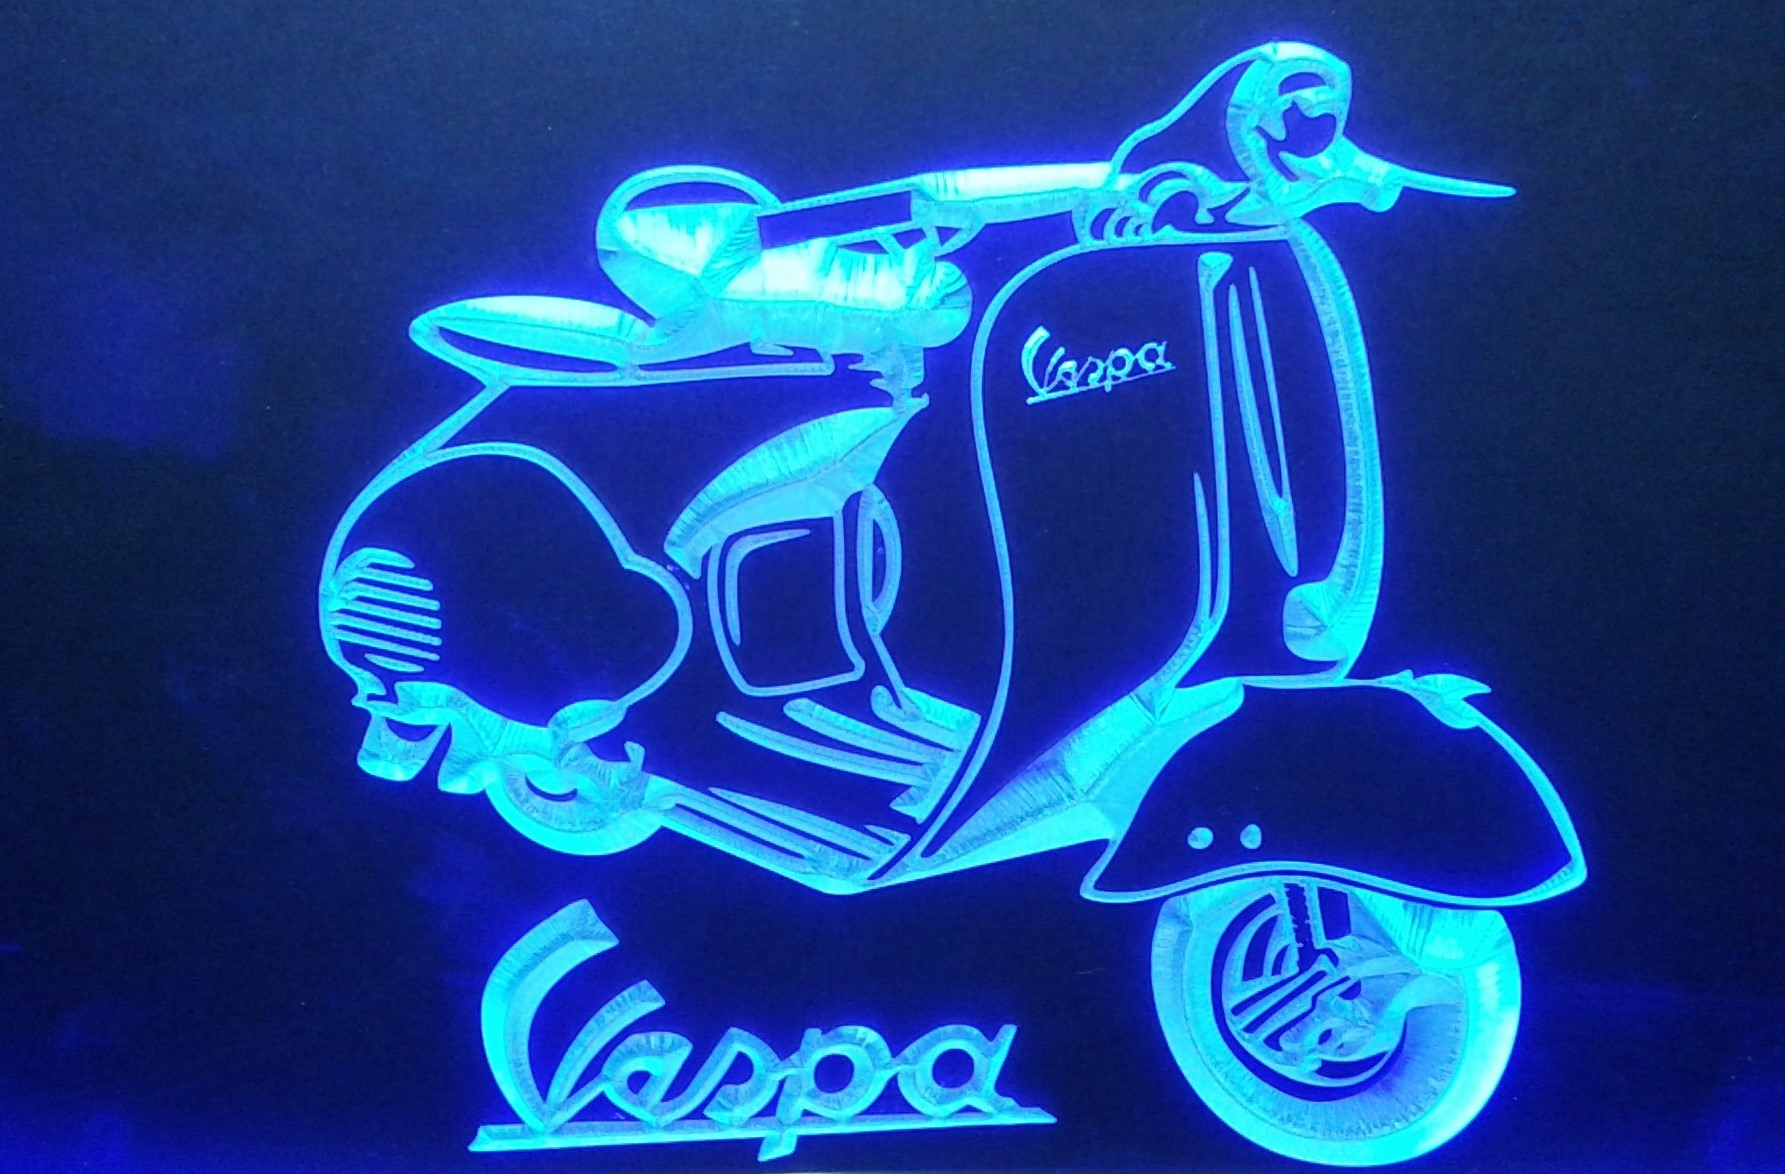 VESPA SCOOTER 3D Led reclame verlichting   Americanshop